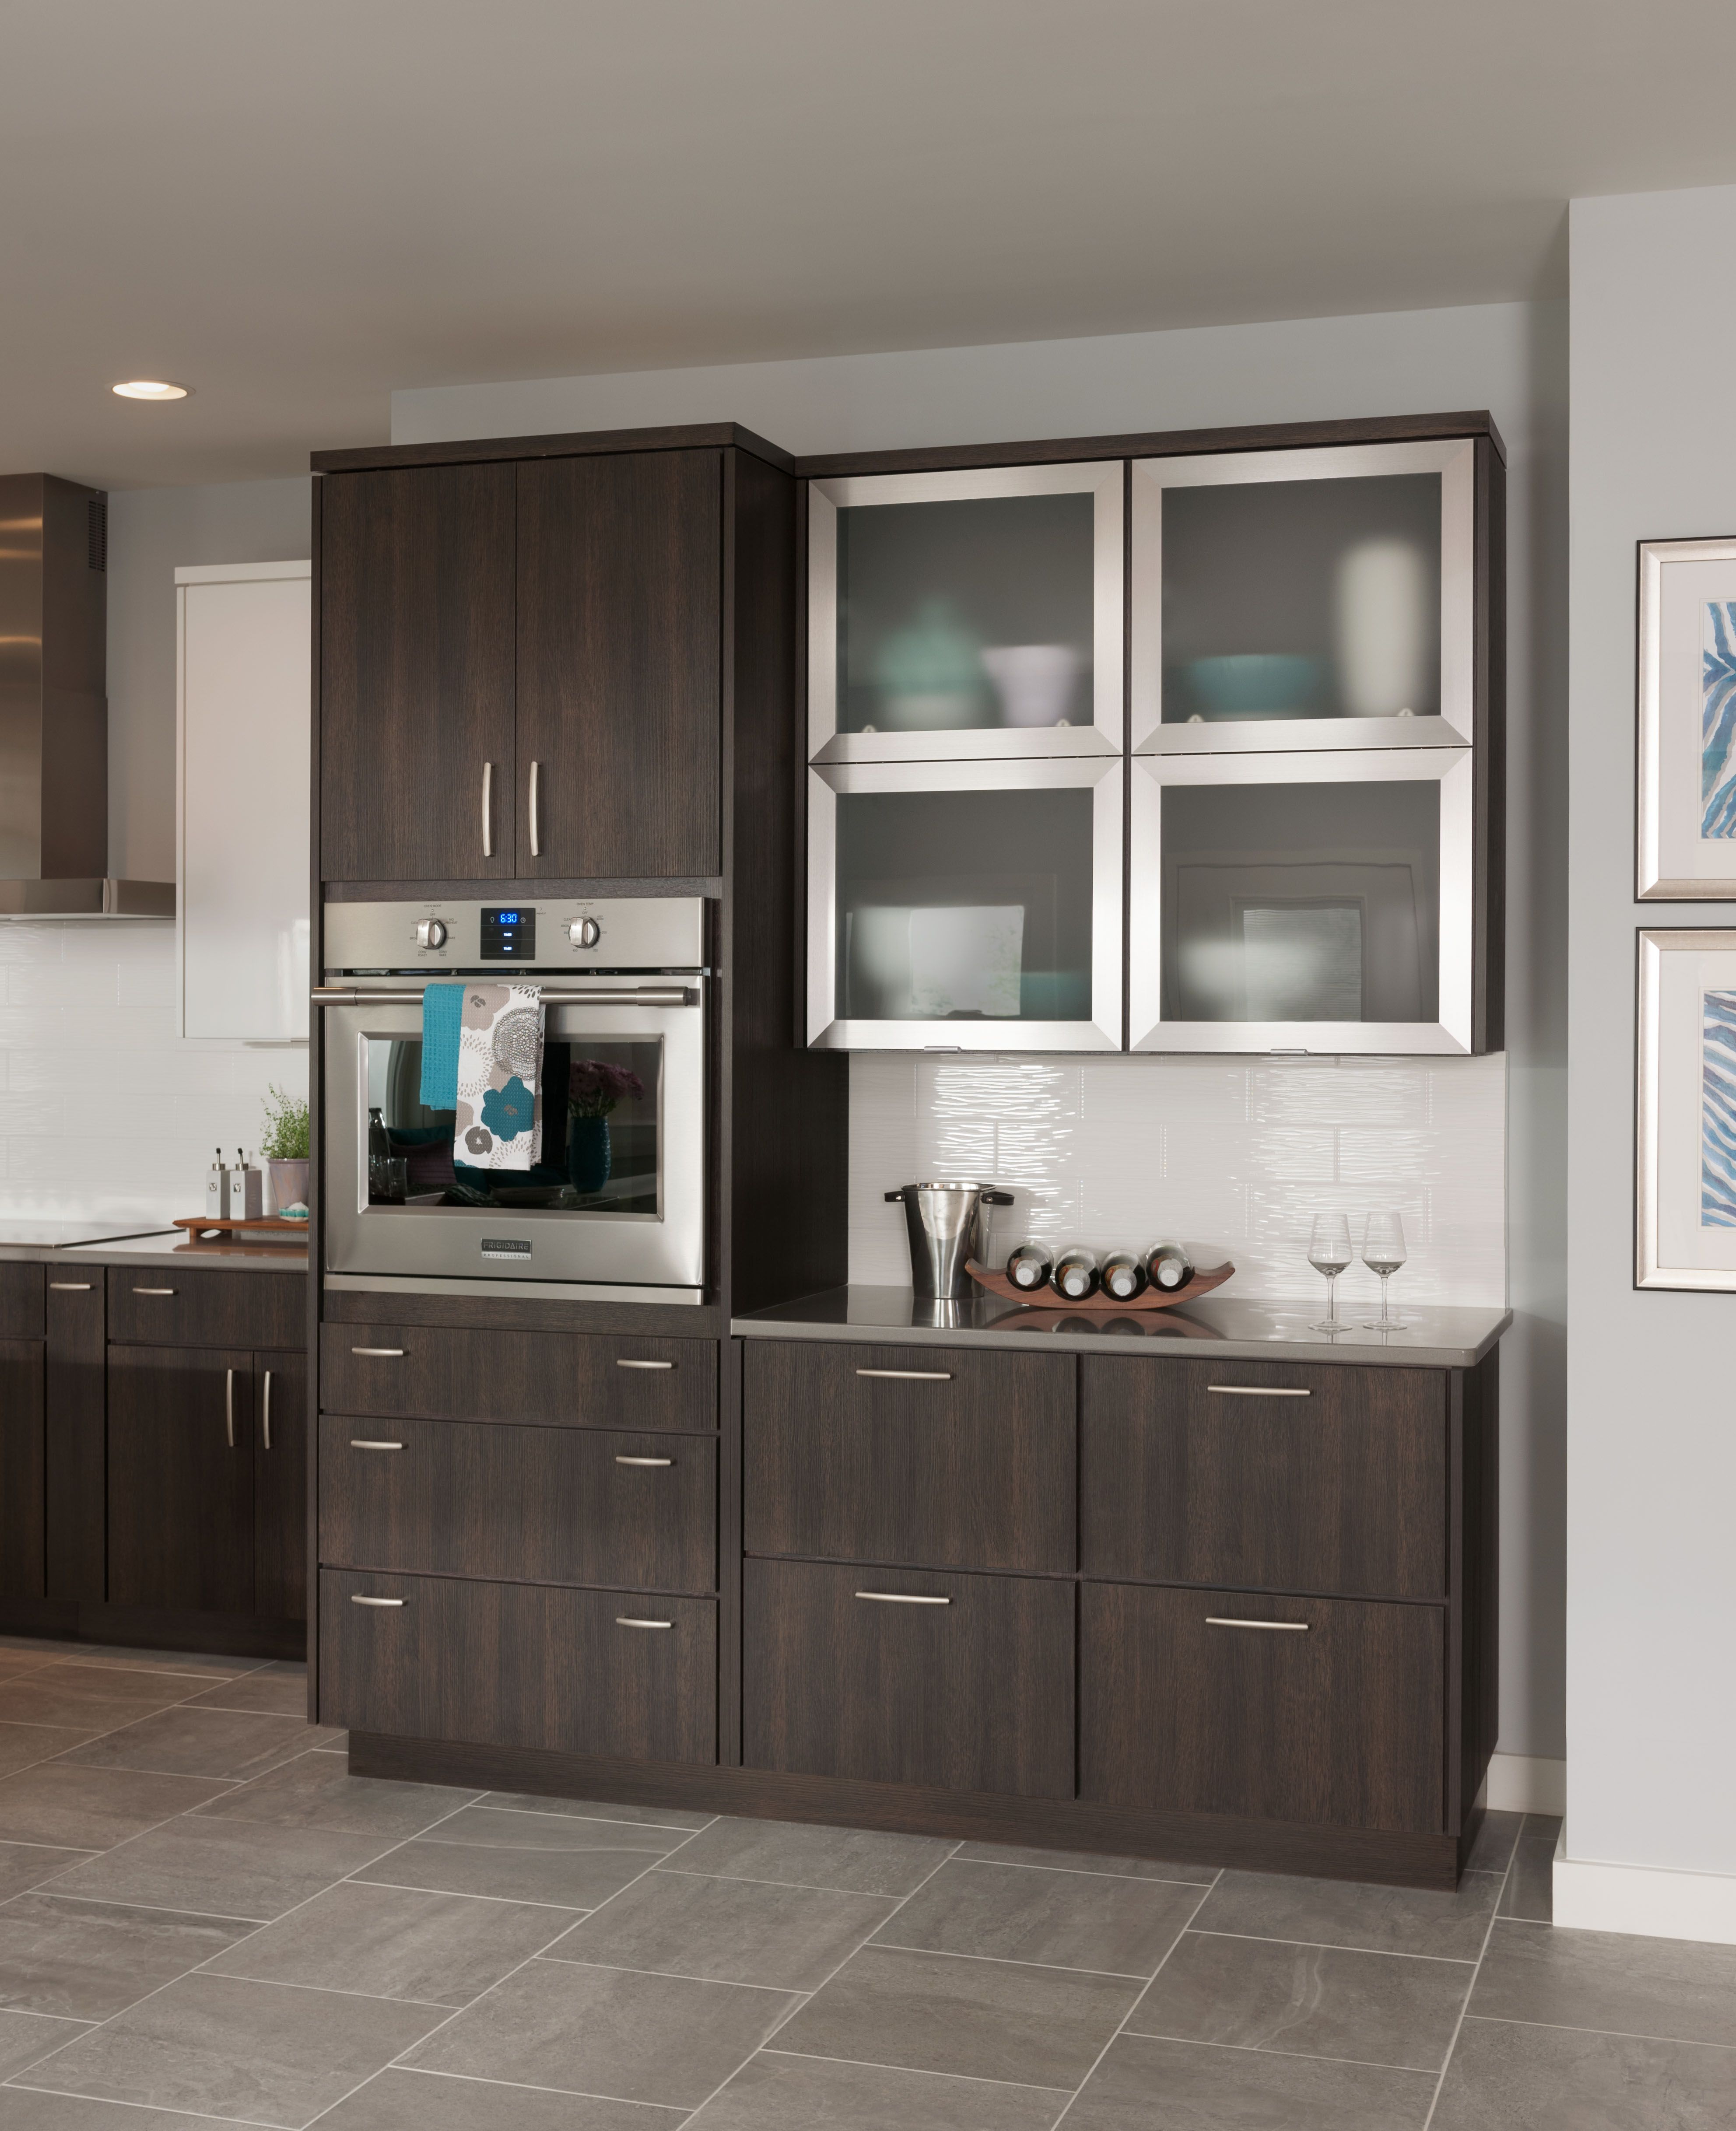 bellagio stainless steel doors with frosted glass the bi fold lift metal doors complement the on kitchen cabinets with glass doors on top id=16019